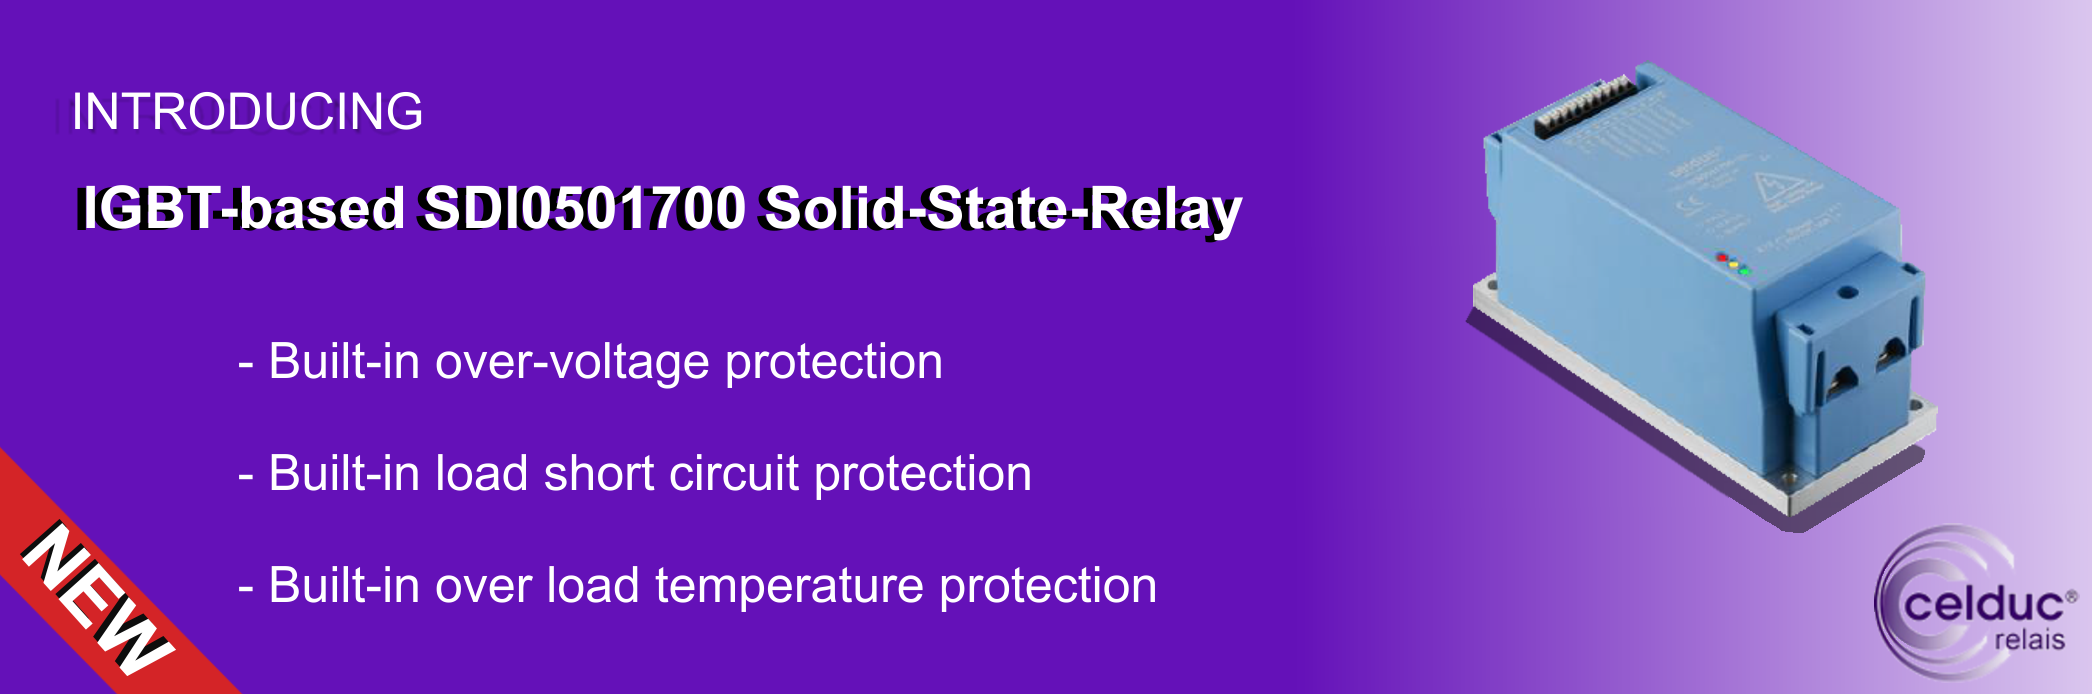 Shc Gmbh Celducs New Igbt Based Solid State Relay Solidstaterelaycircuitpng